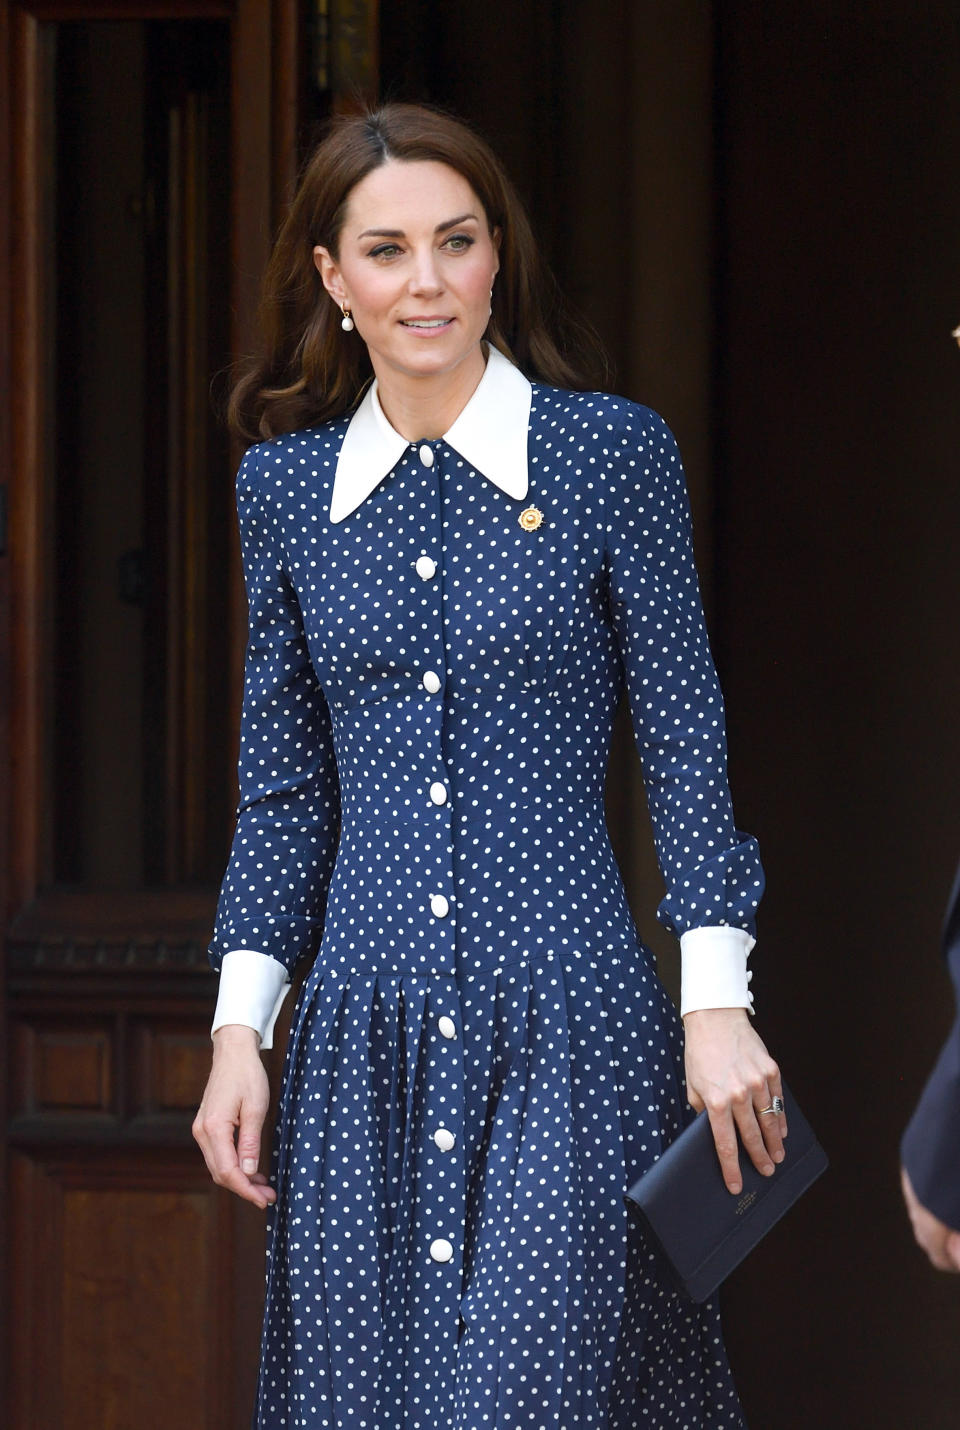 The Duchess of Cambridge wore a polka dot Alessandra Rich dress when she visited the D-Day exhibition at Bletchley Park on May 14, 2019. (Getty Images)